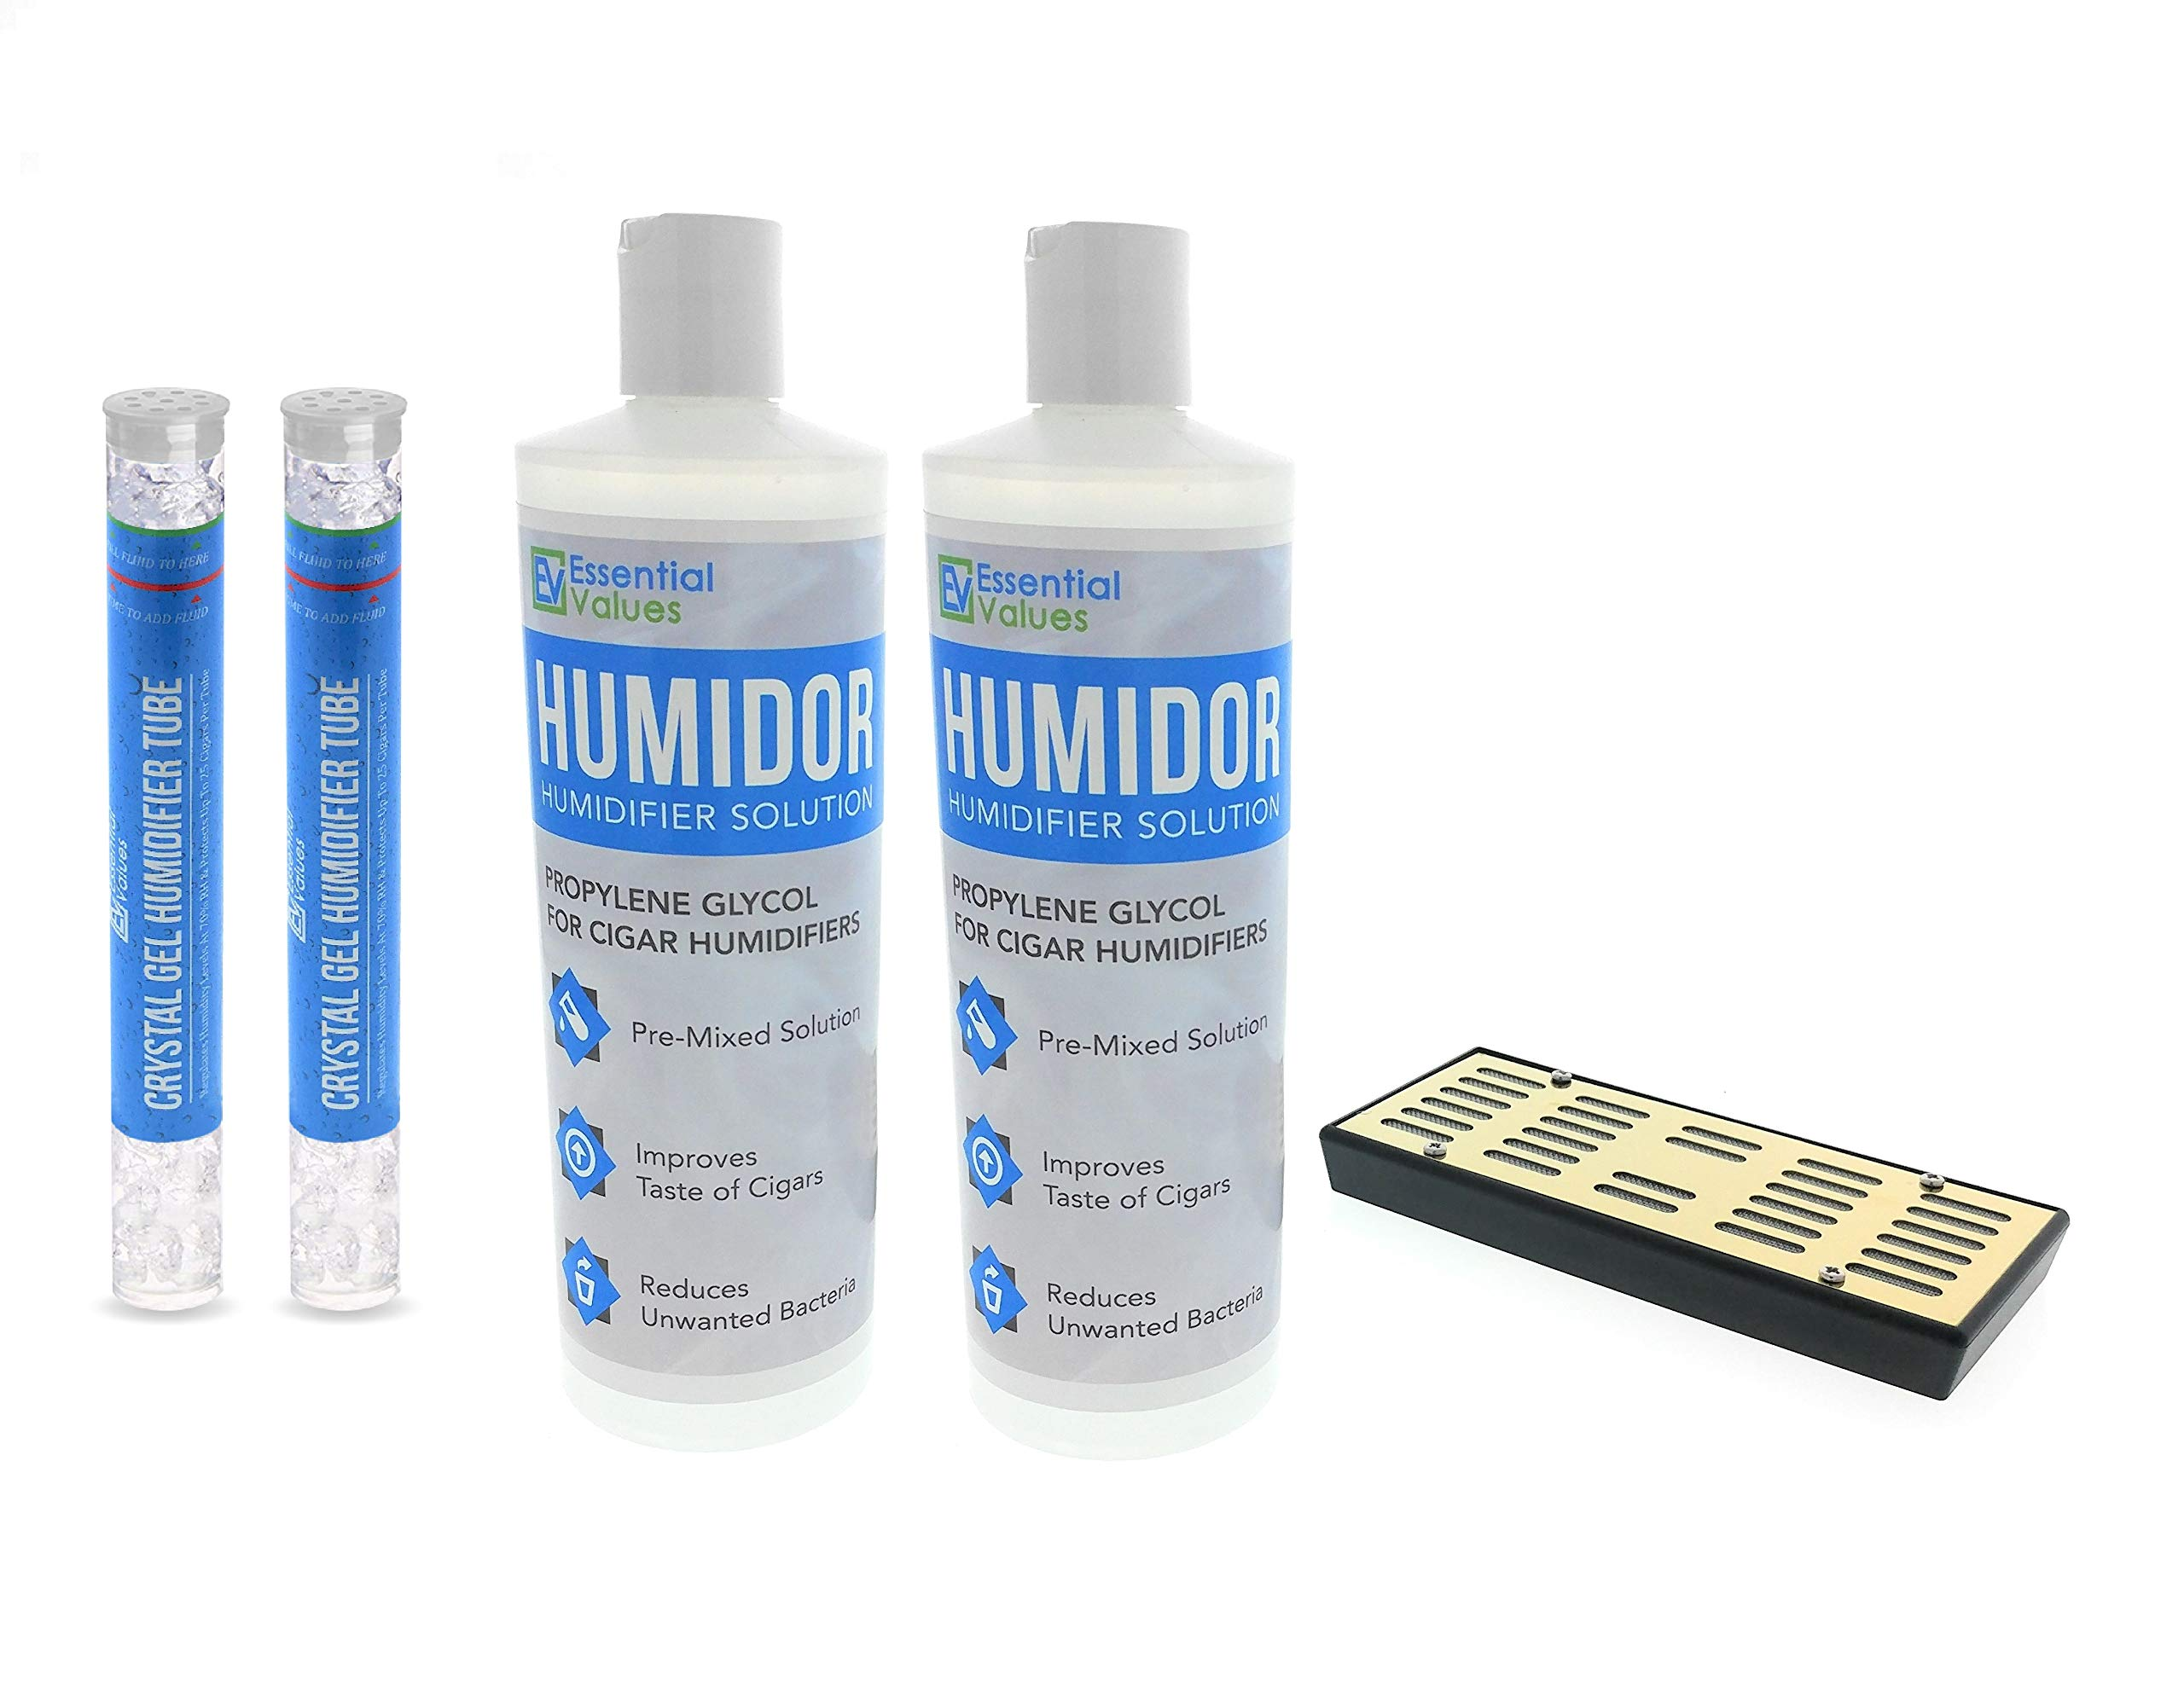 Humidor Solution & Cigar Humidor Humidifier Combo, 16oz Propylene Glycol and Cigar Humidifier for 75-250 Cigars by Essential Values (Humidifier/Gel & 2 Pack Solution)